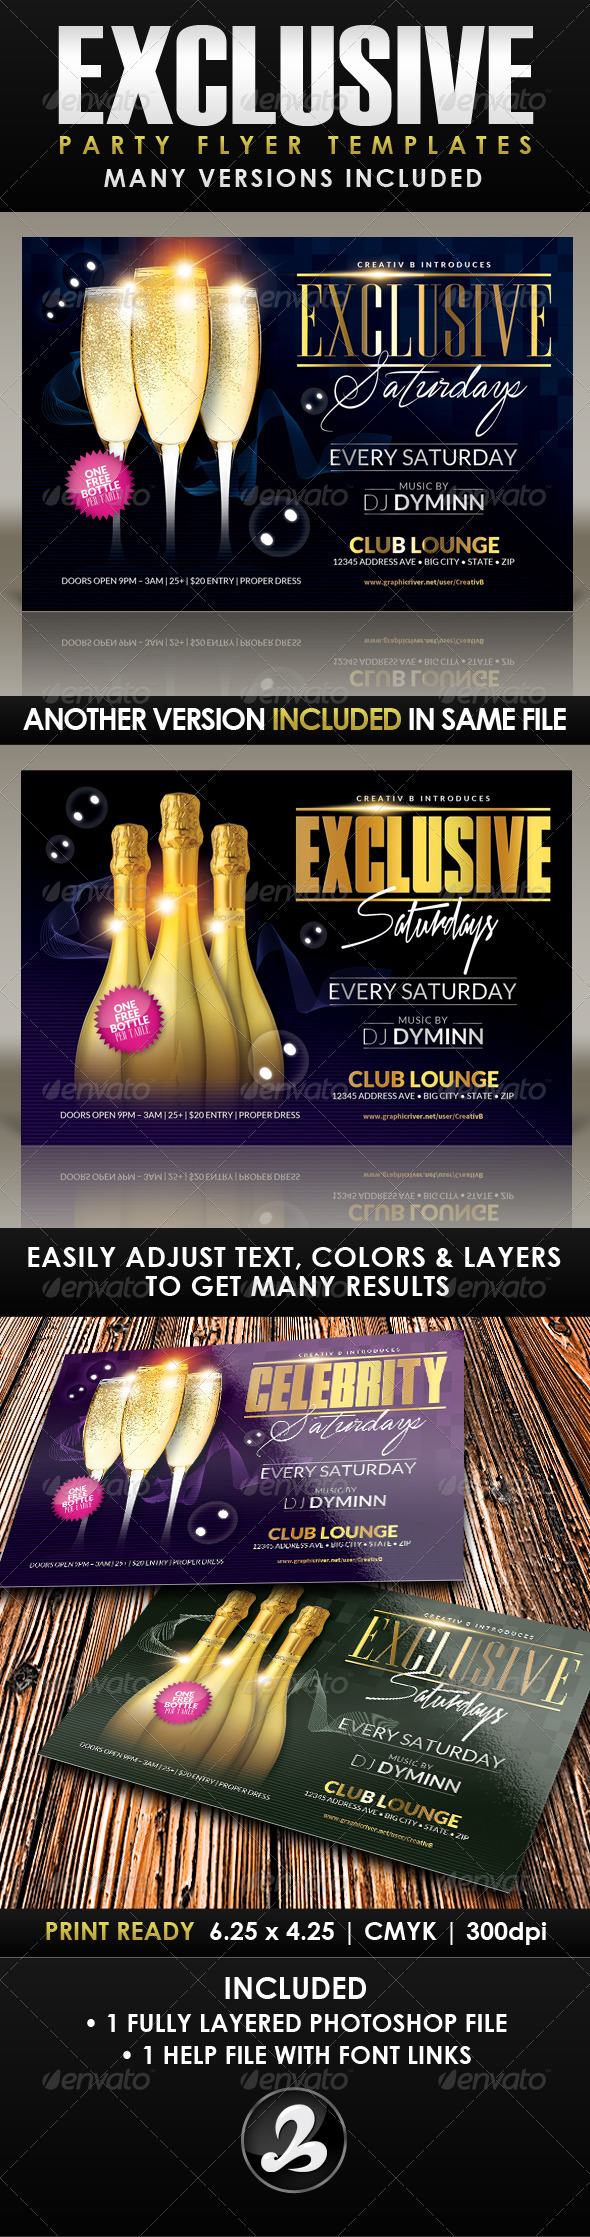 Exclusive Party Flyer Template - Clubs & Parties Events